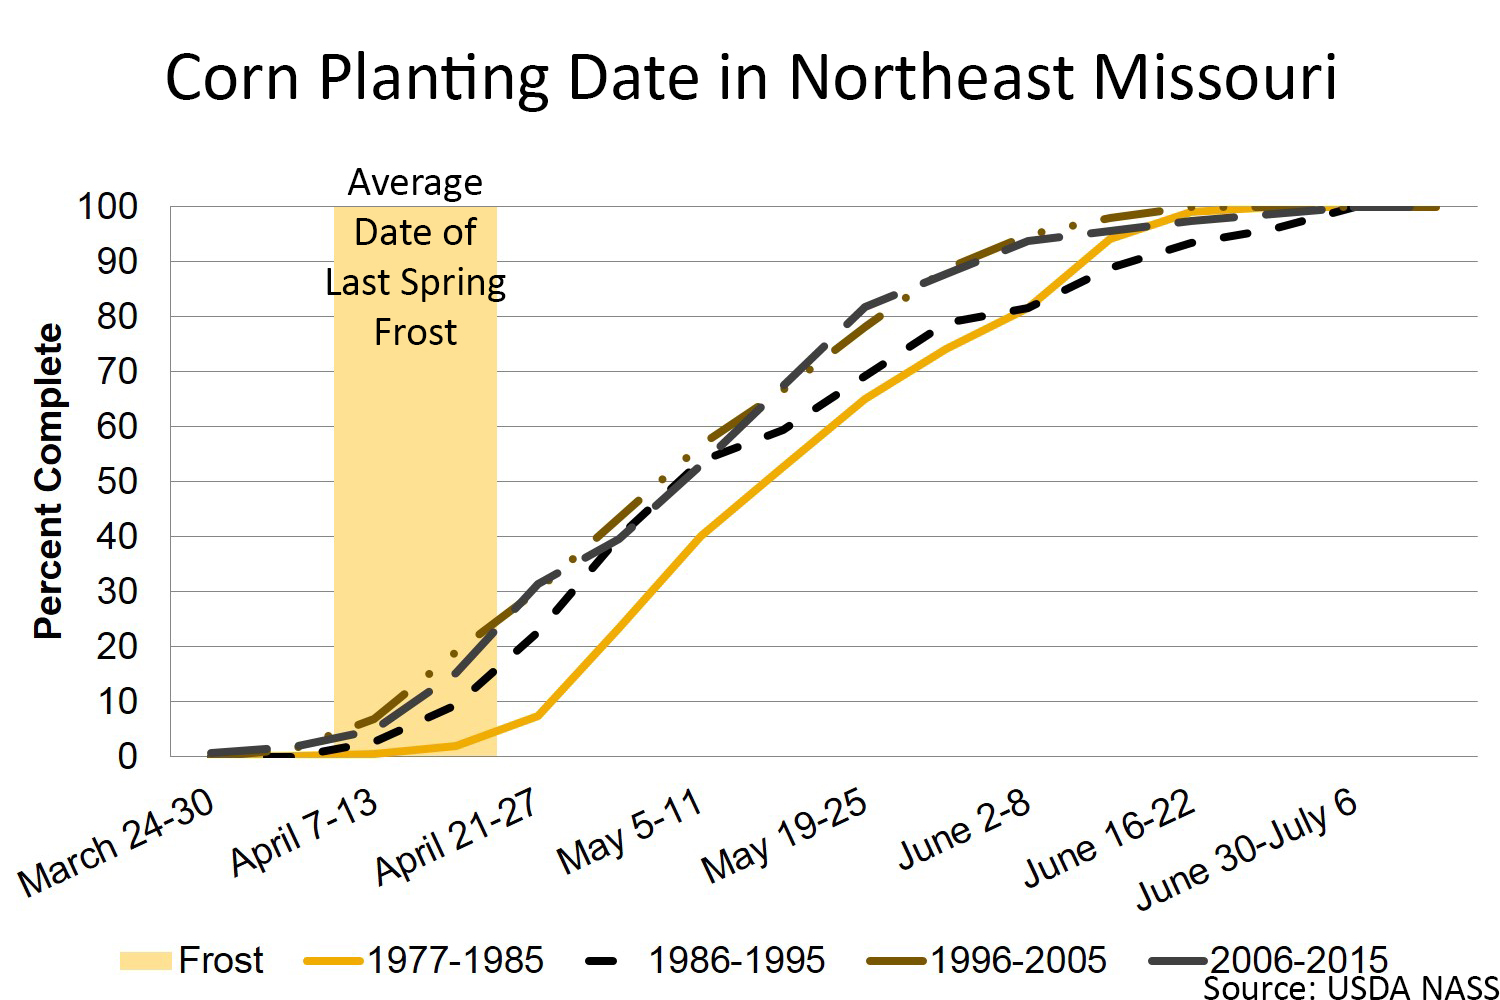 Corn planting date in northeast Missouri chart